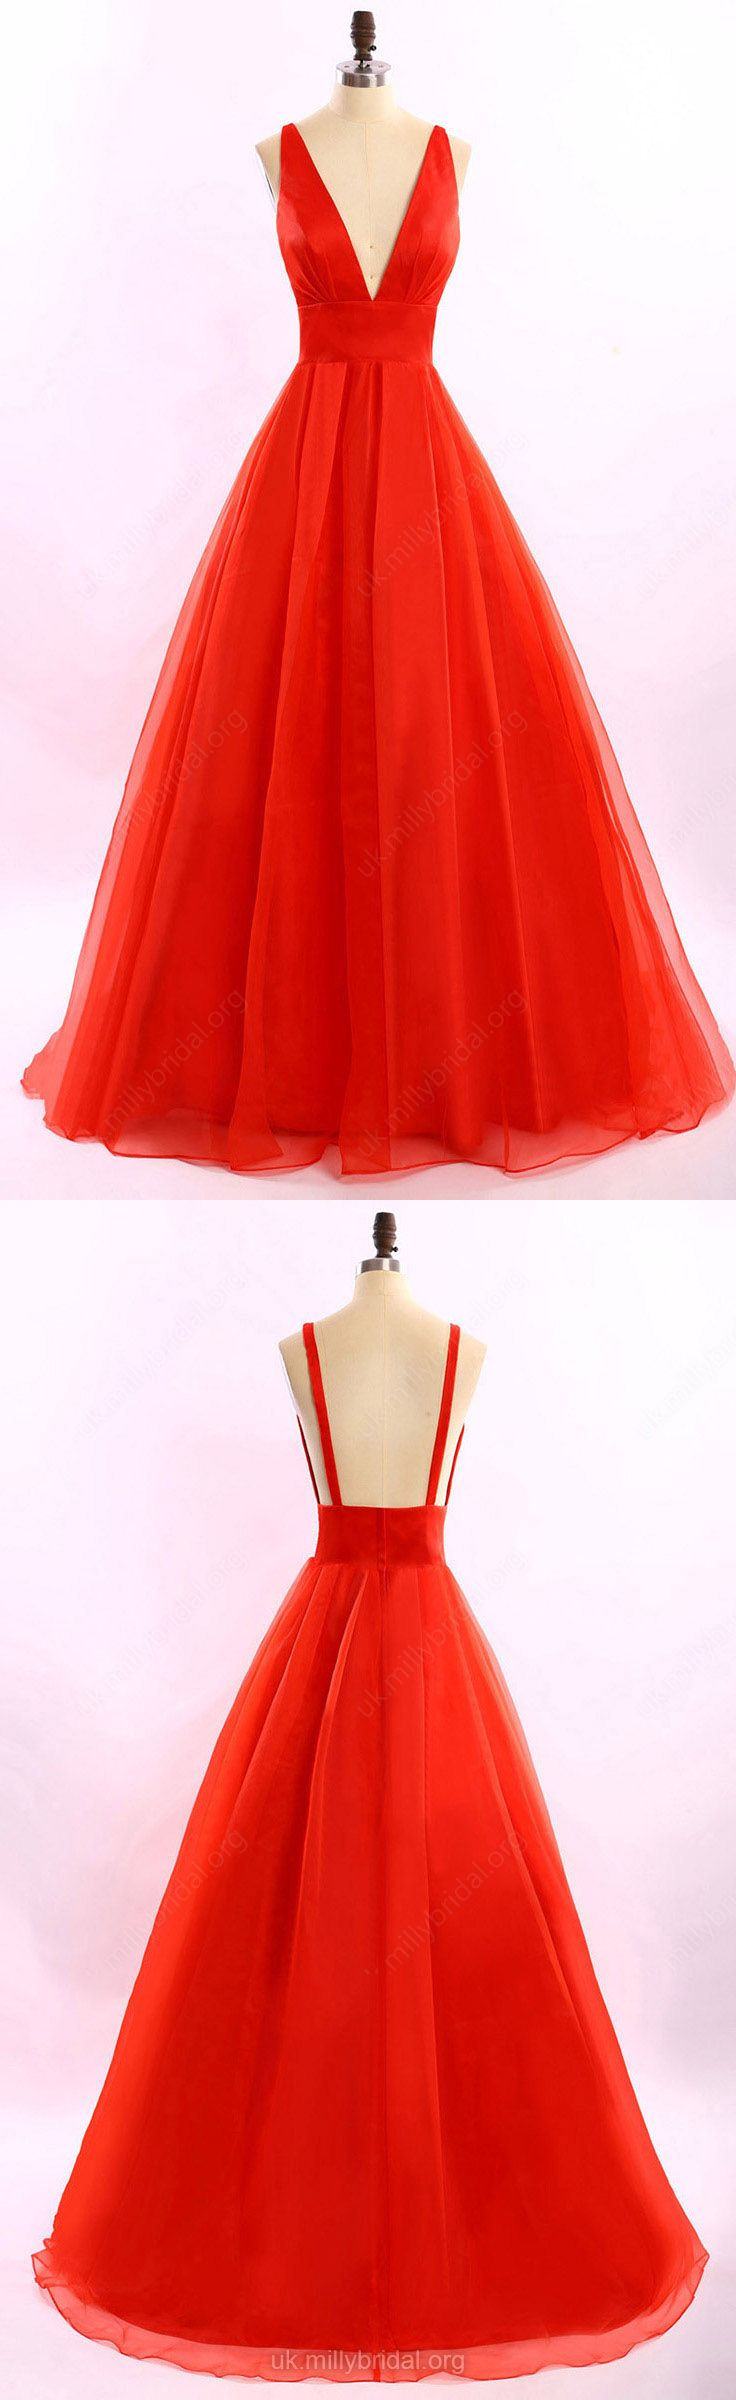 Ball Gown Prom Dresses,Long Prom Dresses 2018,V-neck Prom Dresses Red, Organza Ruffles Prom Dresses Open Back, Classic Prom Dresses For Girls #ballgowns